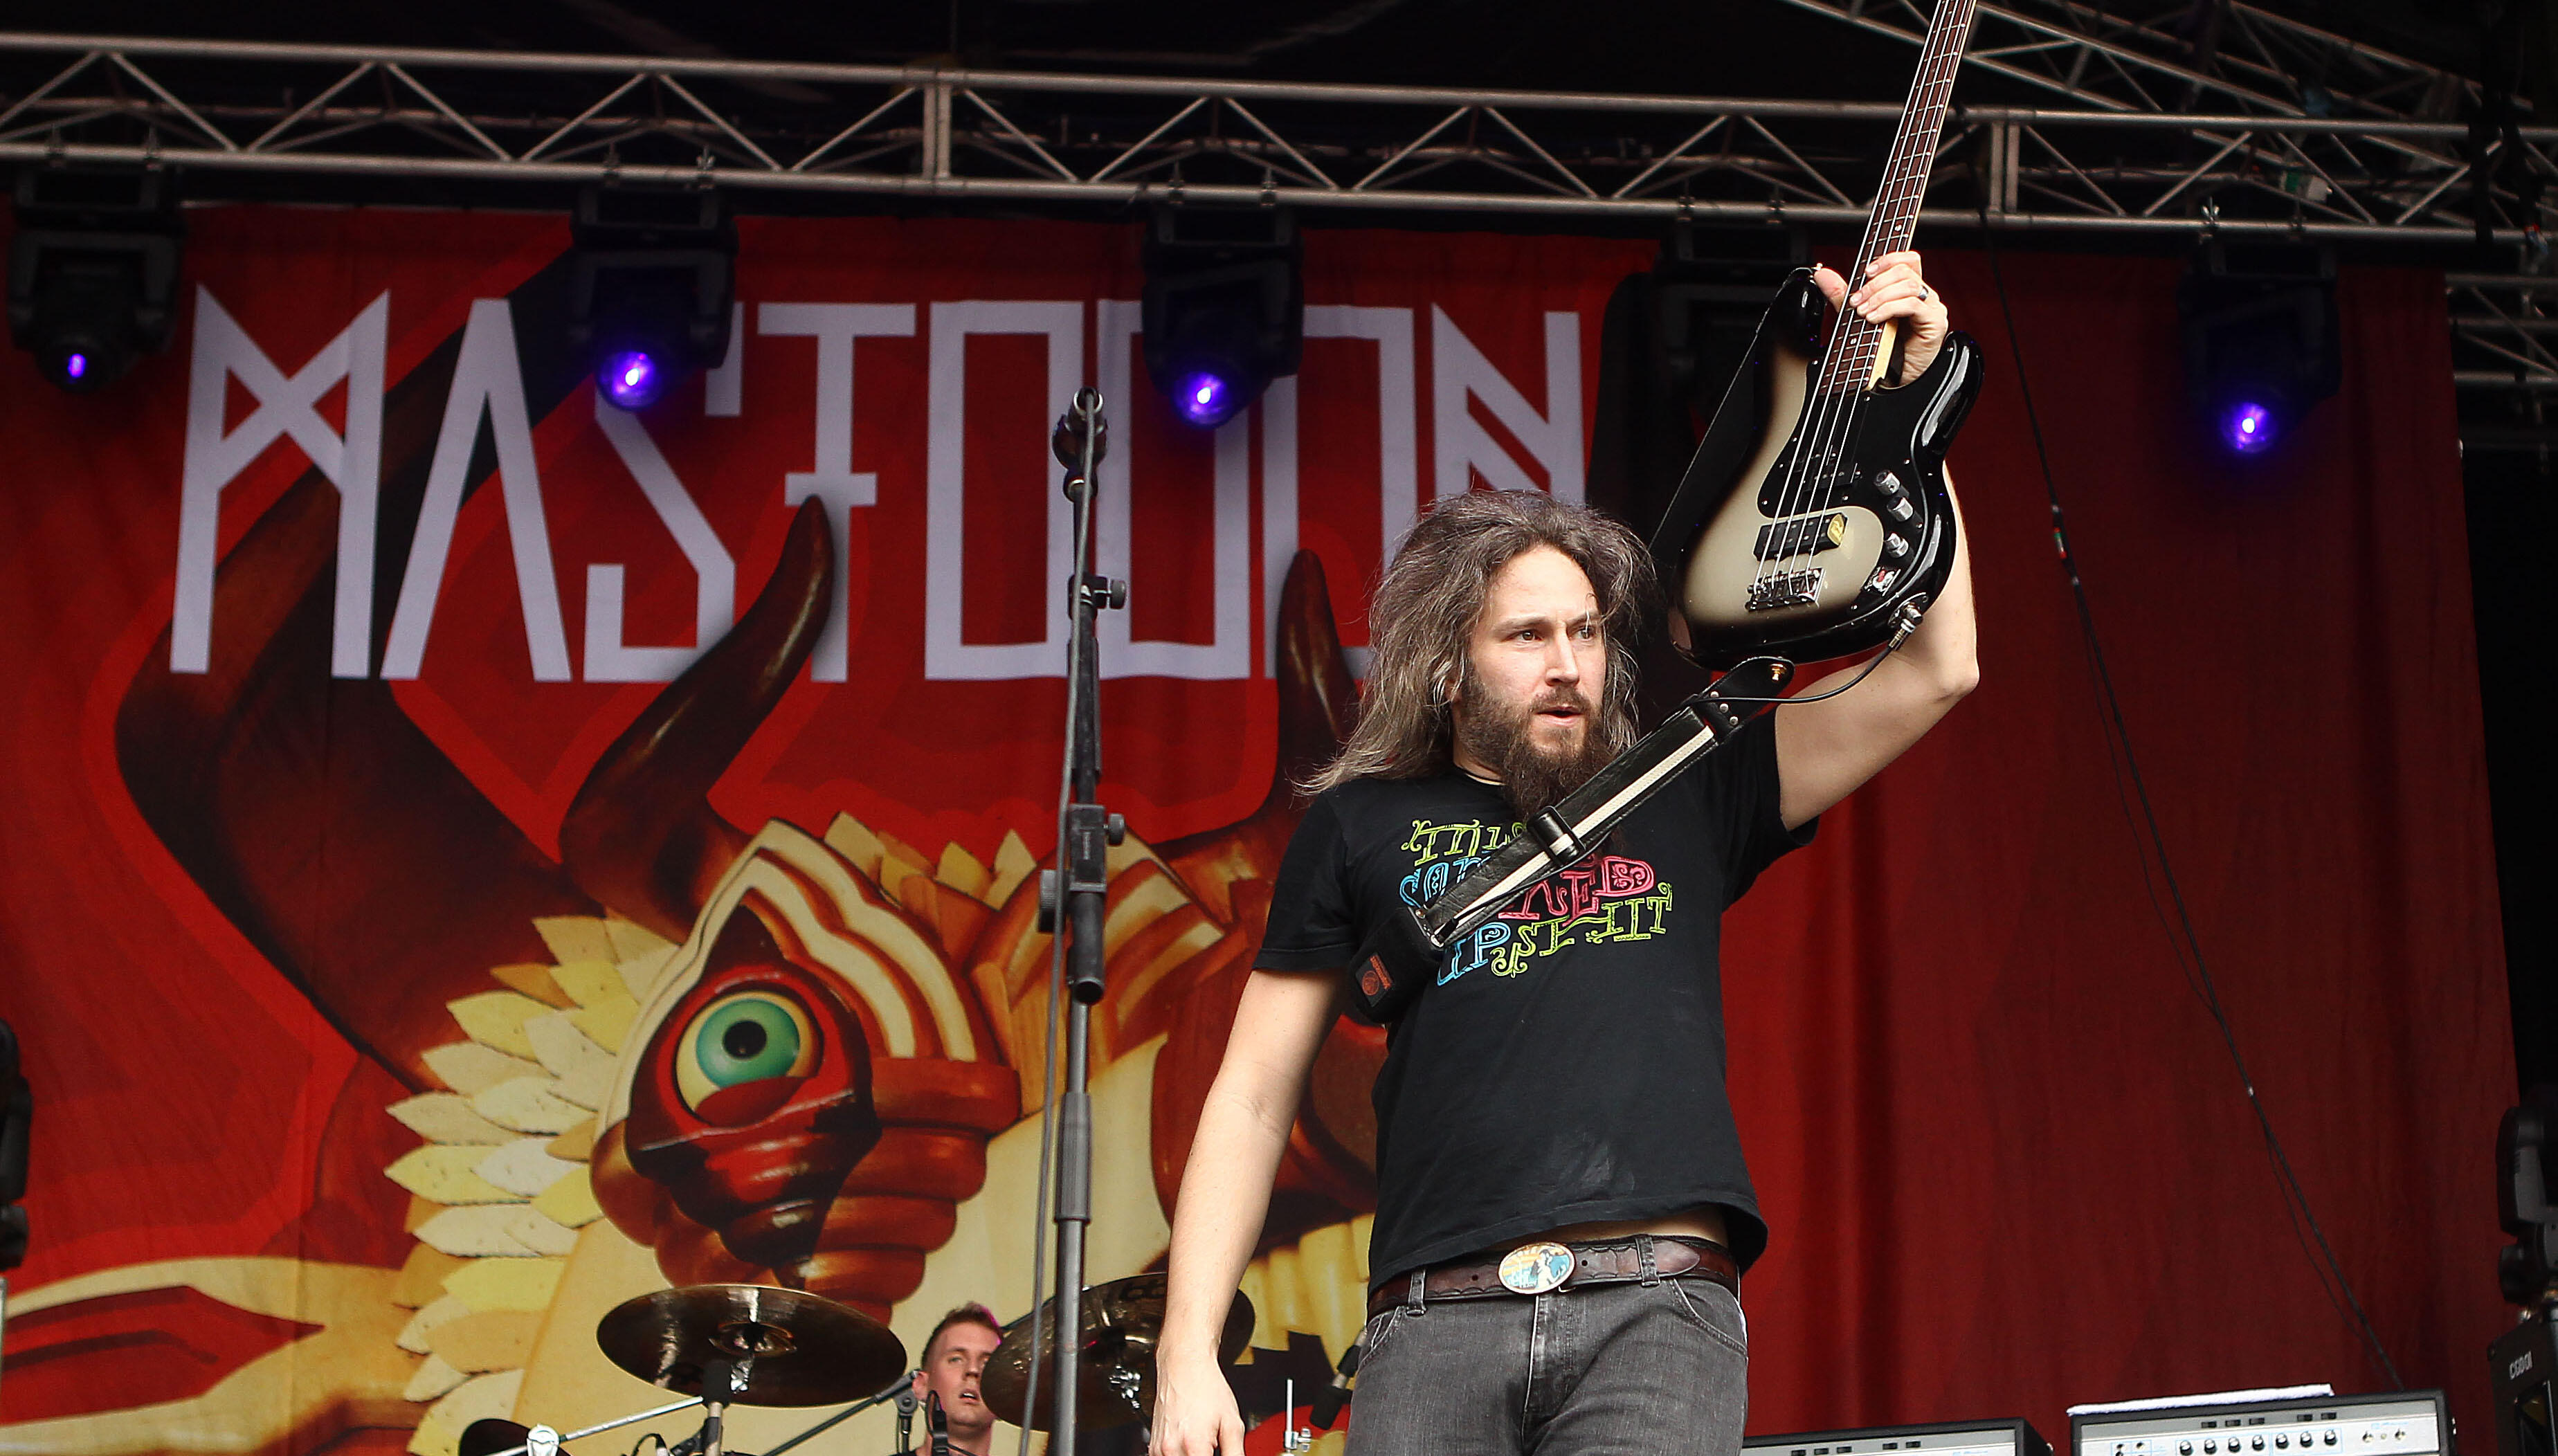 """Mastodon Cancels Tour Due to """"Critical Situation"""" Involving Band Family"""